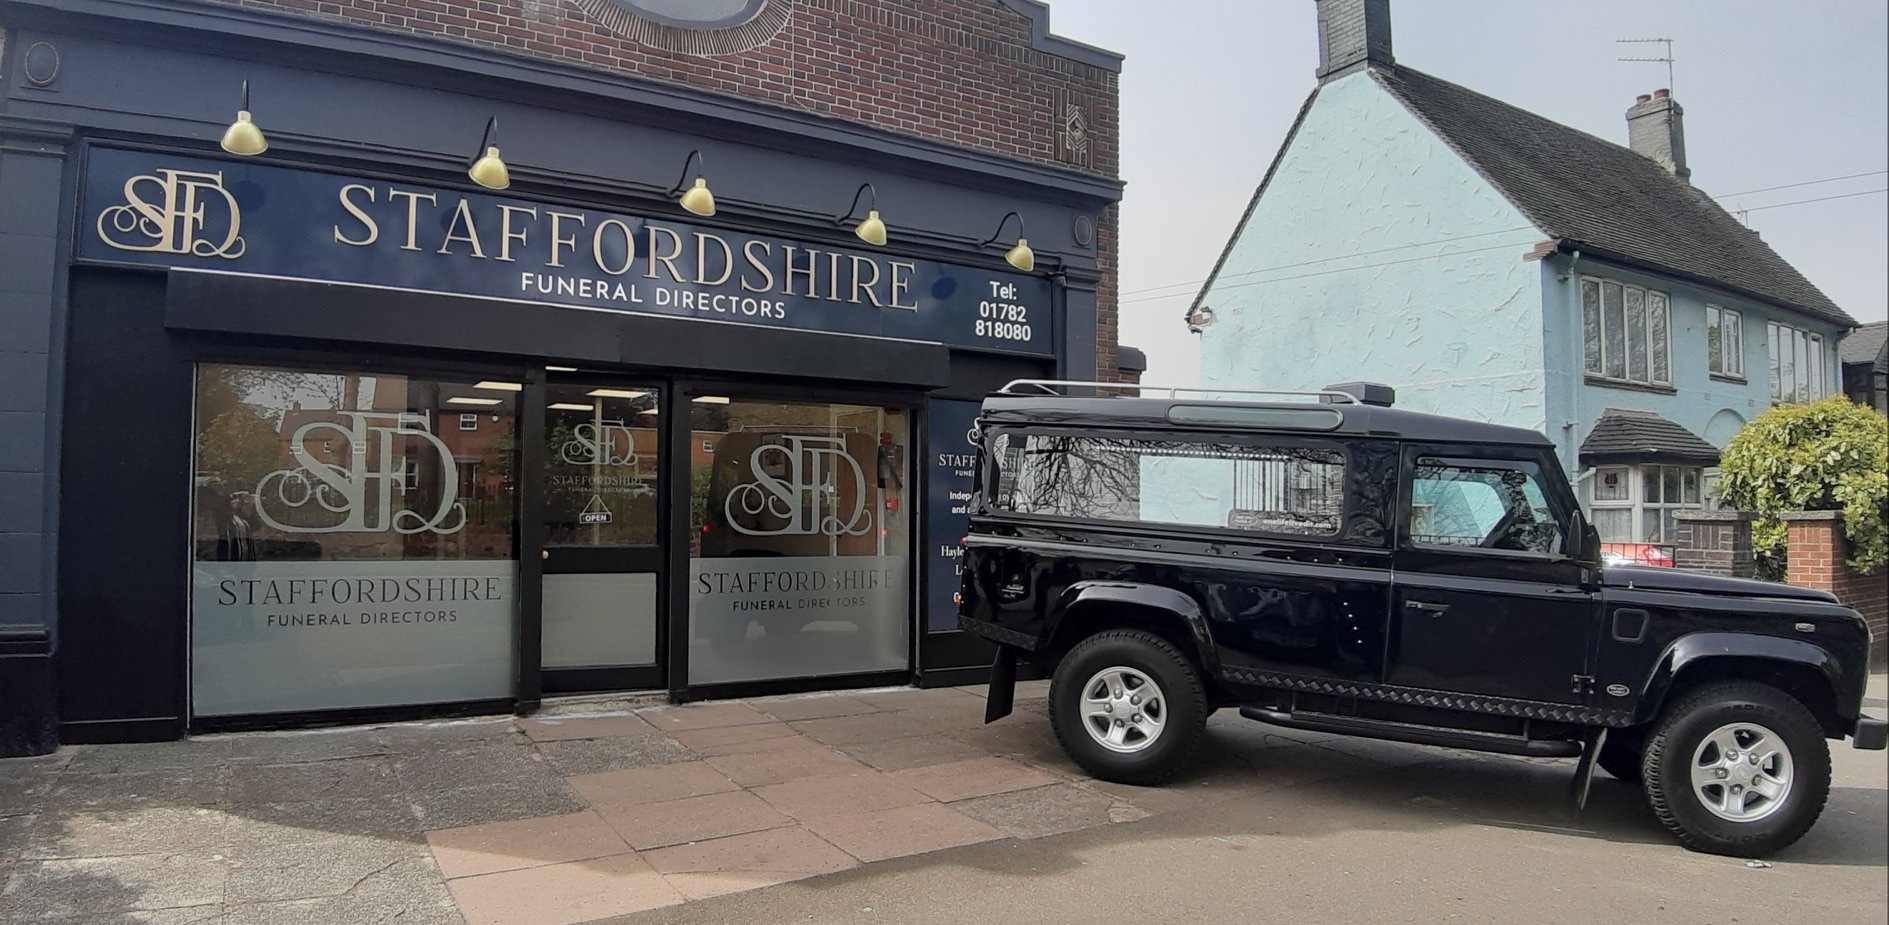 Staffordshire Funeral Directors